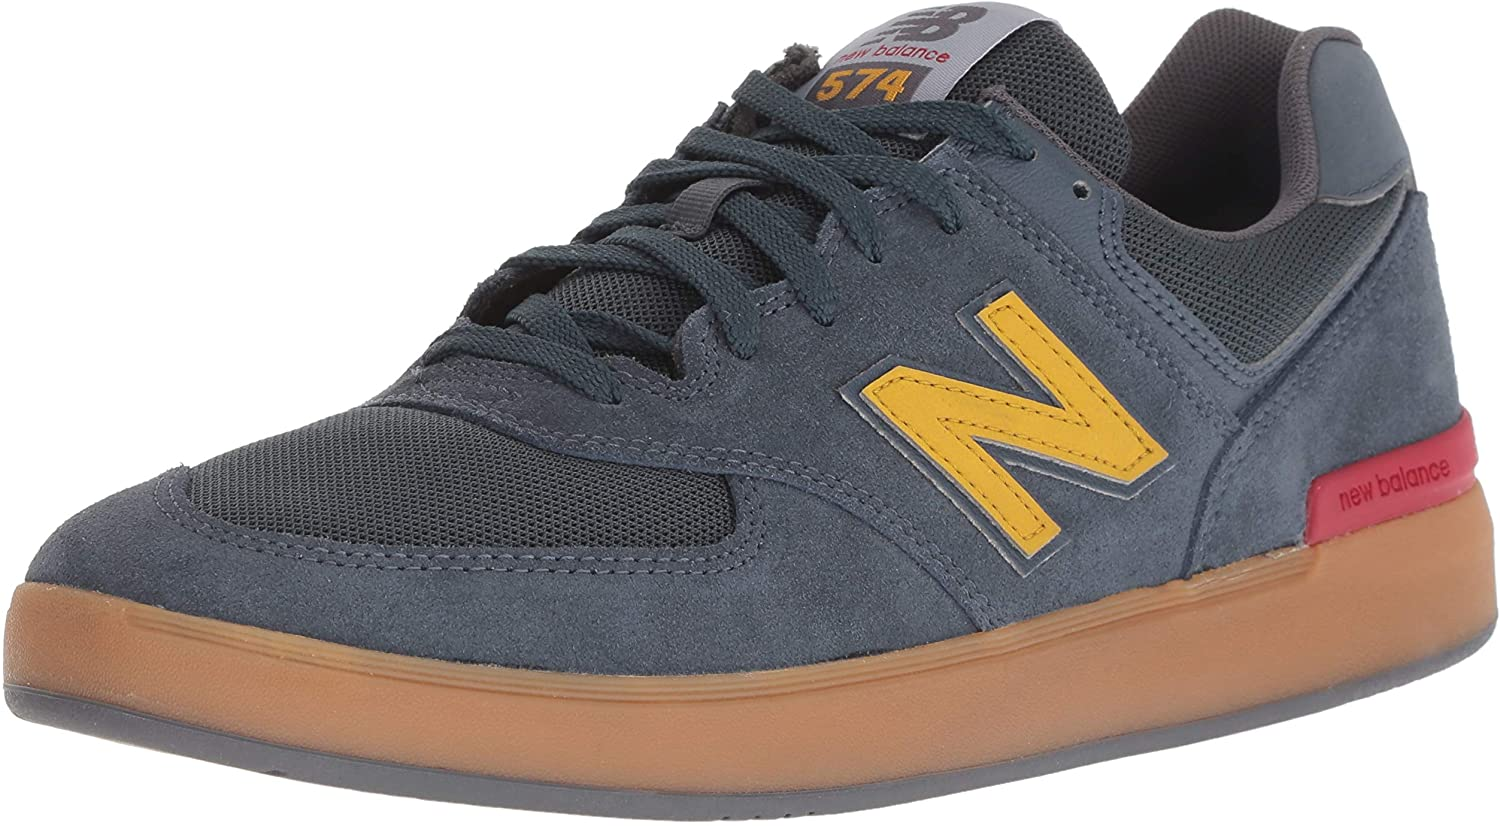 New Balance Men's 574v1 All Coast Skate schuhe, Light Navy Navy Navy Gum, 6 2E US B07BF424ZC  Abgabepreis d007e0